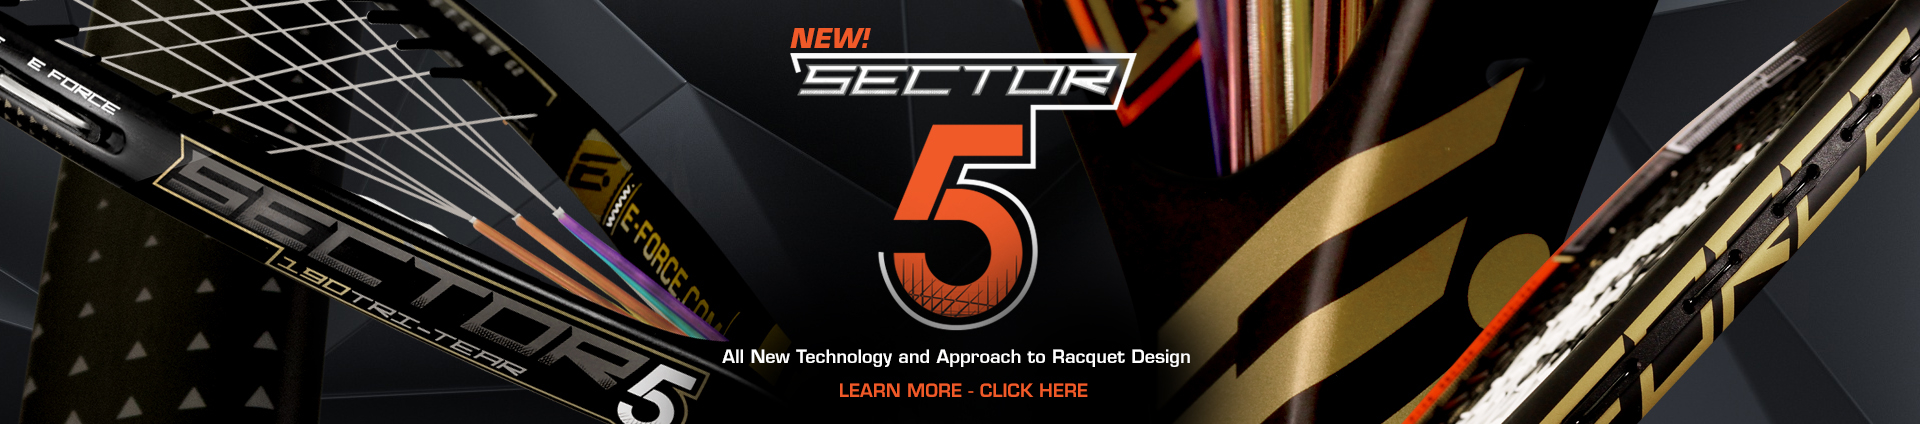 sector 5 web banner BS